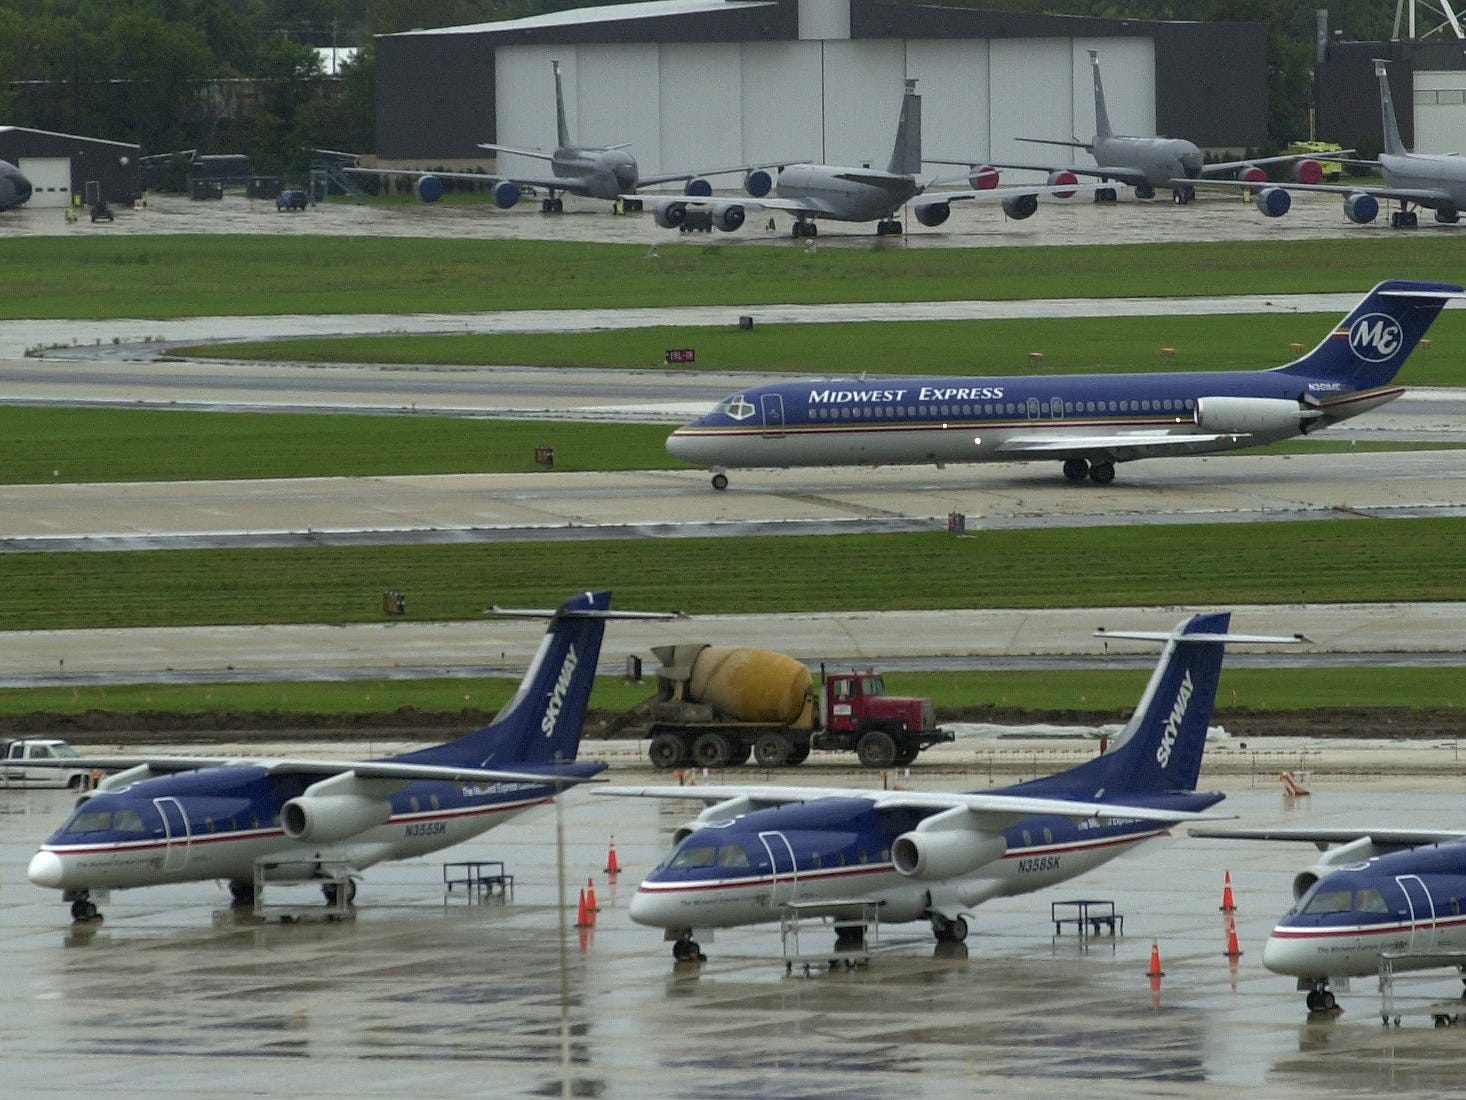 Midwest Express planes returned to General Mitchell International Airport in Milwaukee September 13, 2001 to restart regular service following the 9/11 attacks..